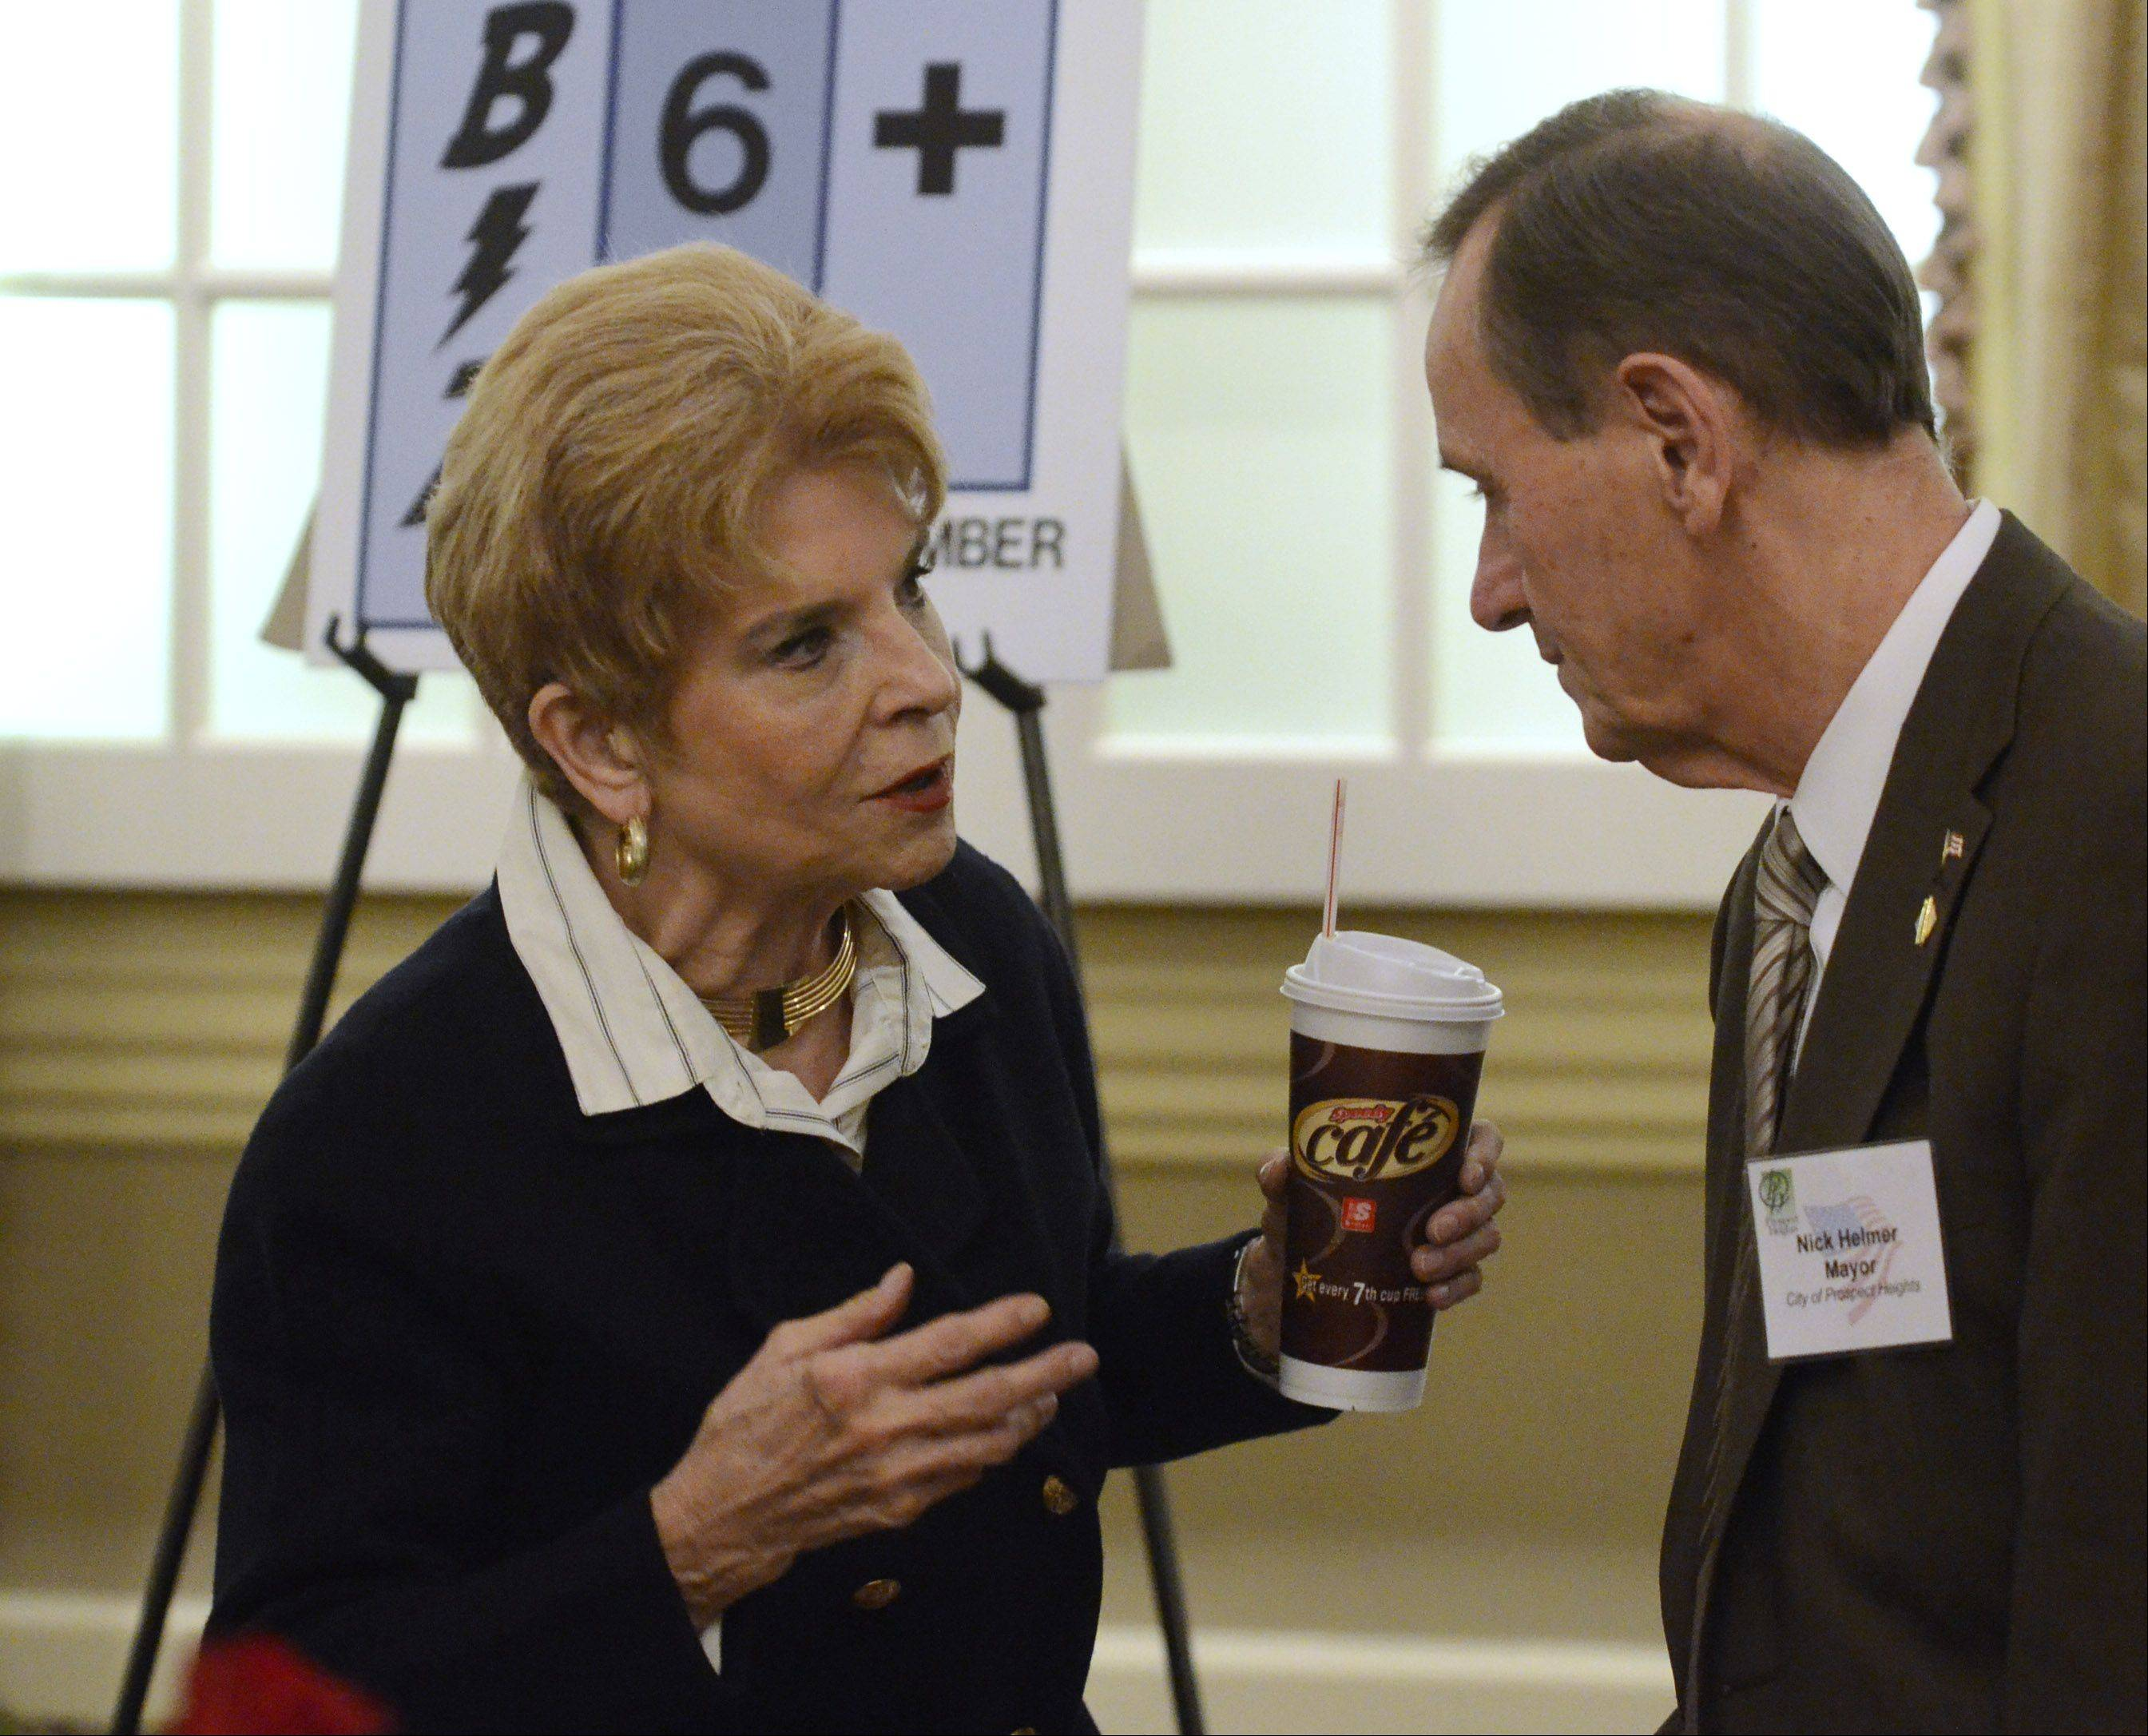 Comptroller Judy Baar Topinka confers with Prospect Heights Mayor Nick Helmer after the luncheon.